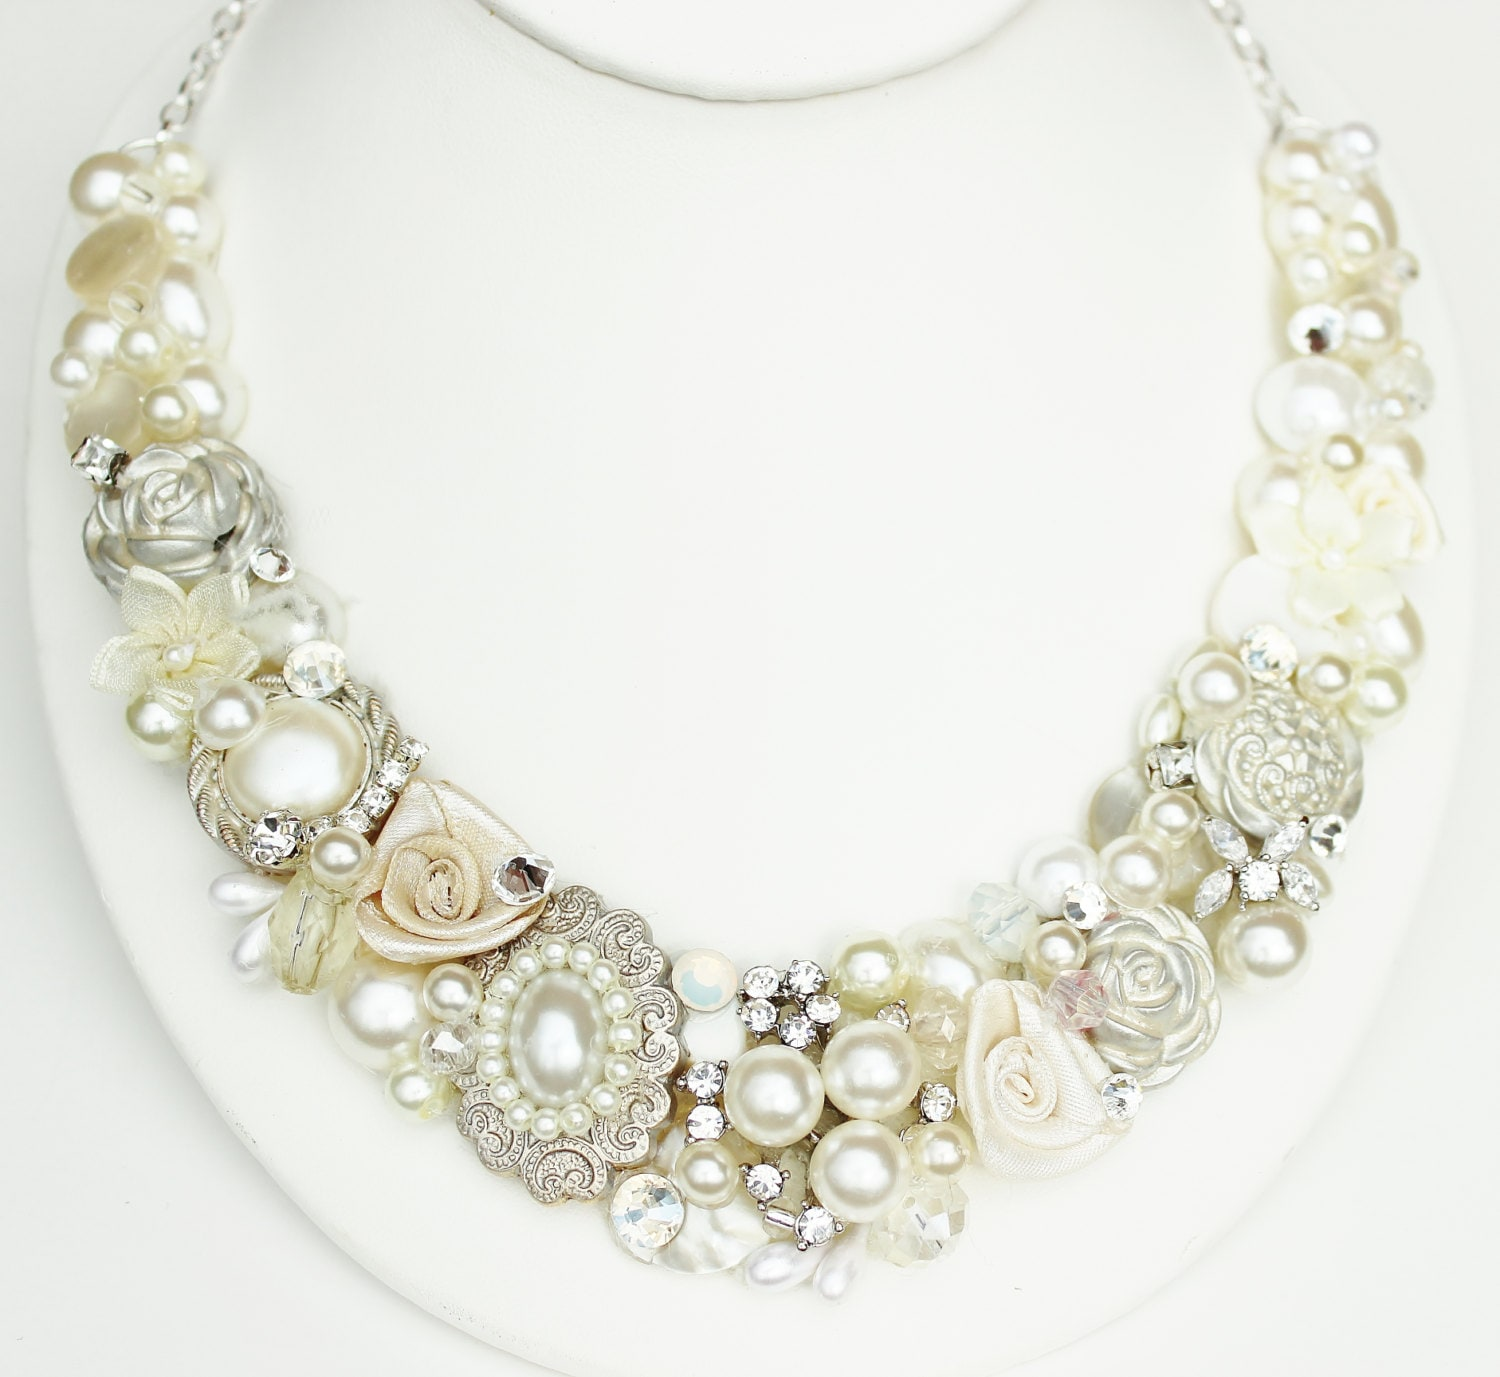 Bridal Statement Necklace- Rhinestones & Pearl Bib- Vintage Inspired Bib Necklace- Wedding Accessories- Floral necklace